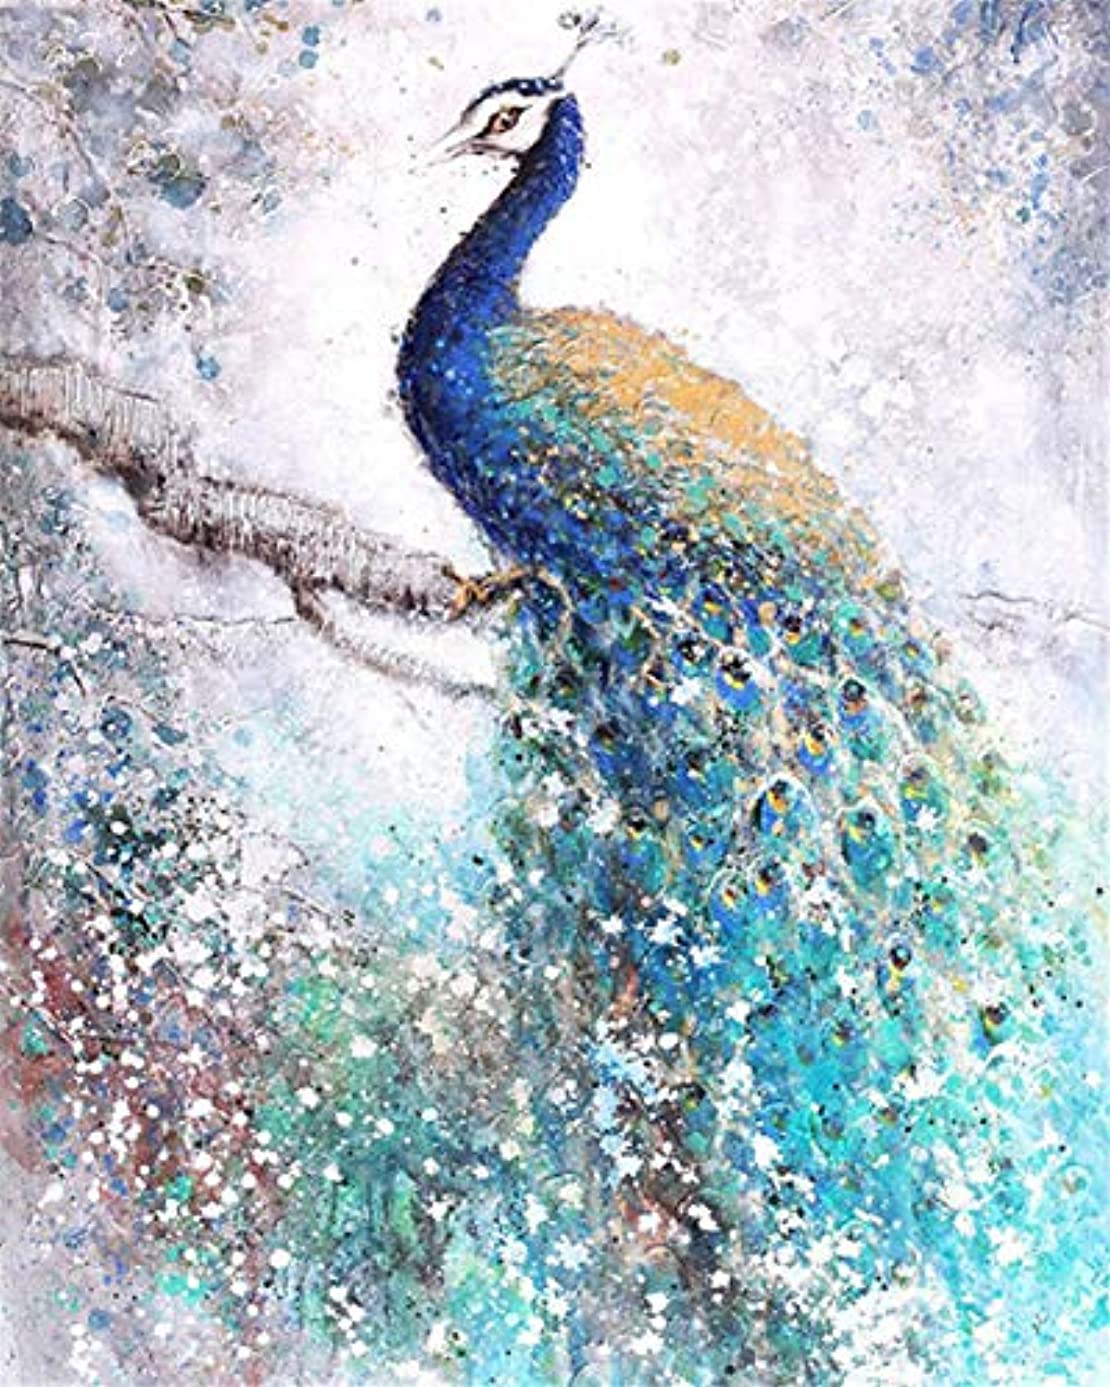 Dylan's cabin DIY 5D Diamond Painting Kits for Adults,Full Drill Embroidery Paint with Diamond for Home Wall Decor(peacock/16x12inch)